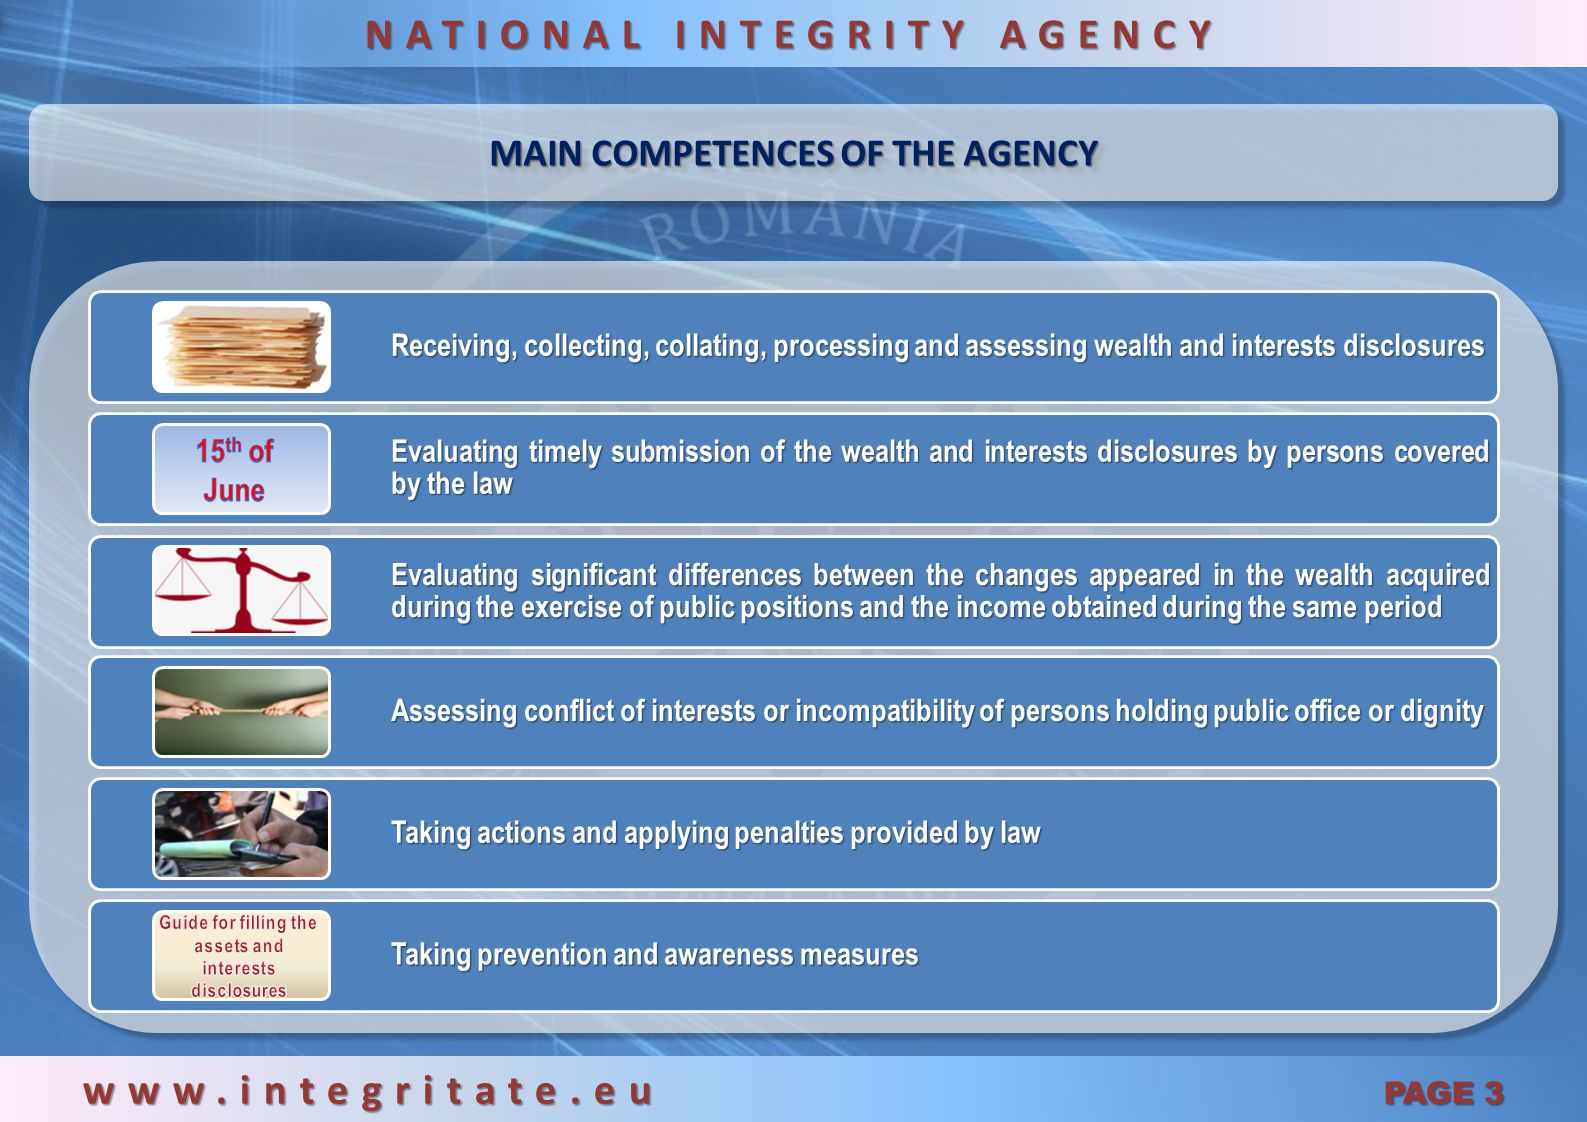 GENERAL DATA www.integritate.eu PAGE 2 NATIONAL INTEGRITY AGENCY AN AUTONOMOUS ADMINISTRATIVE AUTHORITY OF INVESTIGATION OPERATES ON THE PRINCIPLES OF LEGITIMACY, IMPARTIALITY, INDEPENDENCE, CELERITY, THE RIGHT TO DEFENSE AND GOOD ADMINISTRATION ENJOYS OPERATIONAL INDEPENDENCE NATIONAL INTEGRITY AGENCY (A.N.I.) (A.N.I.) Established in 2007 but its effective activity started in mid 2008 A.N.I.